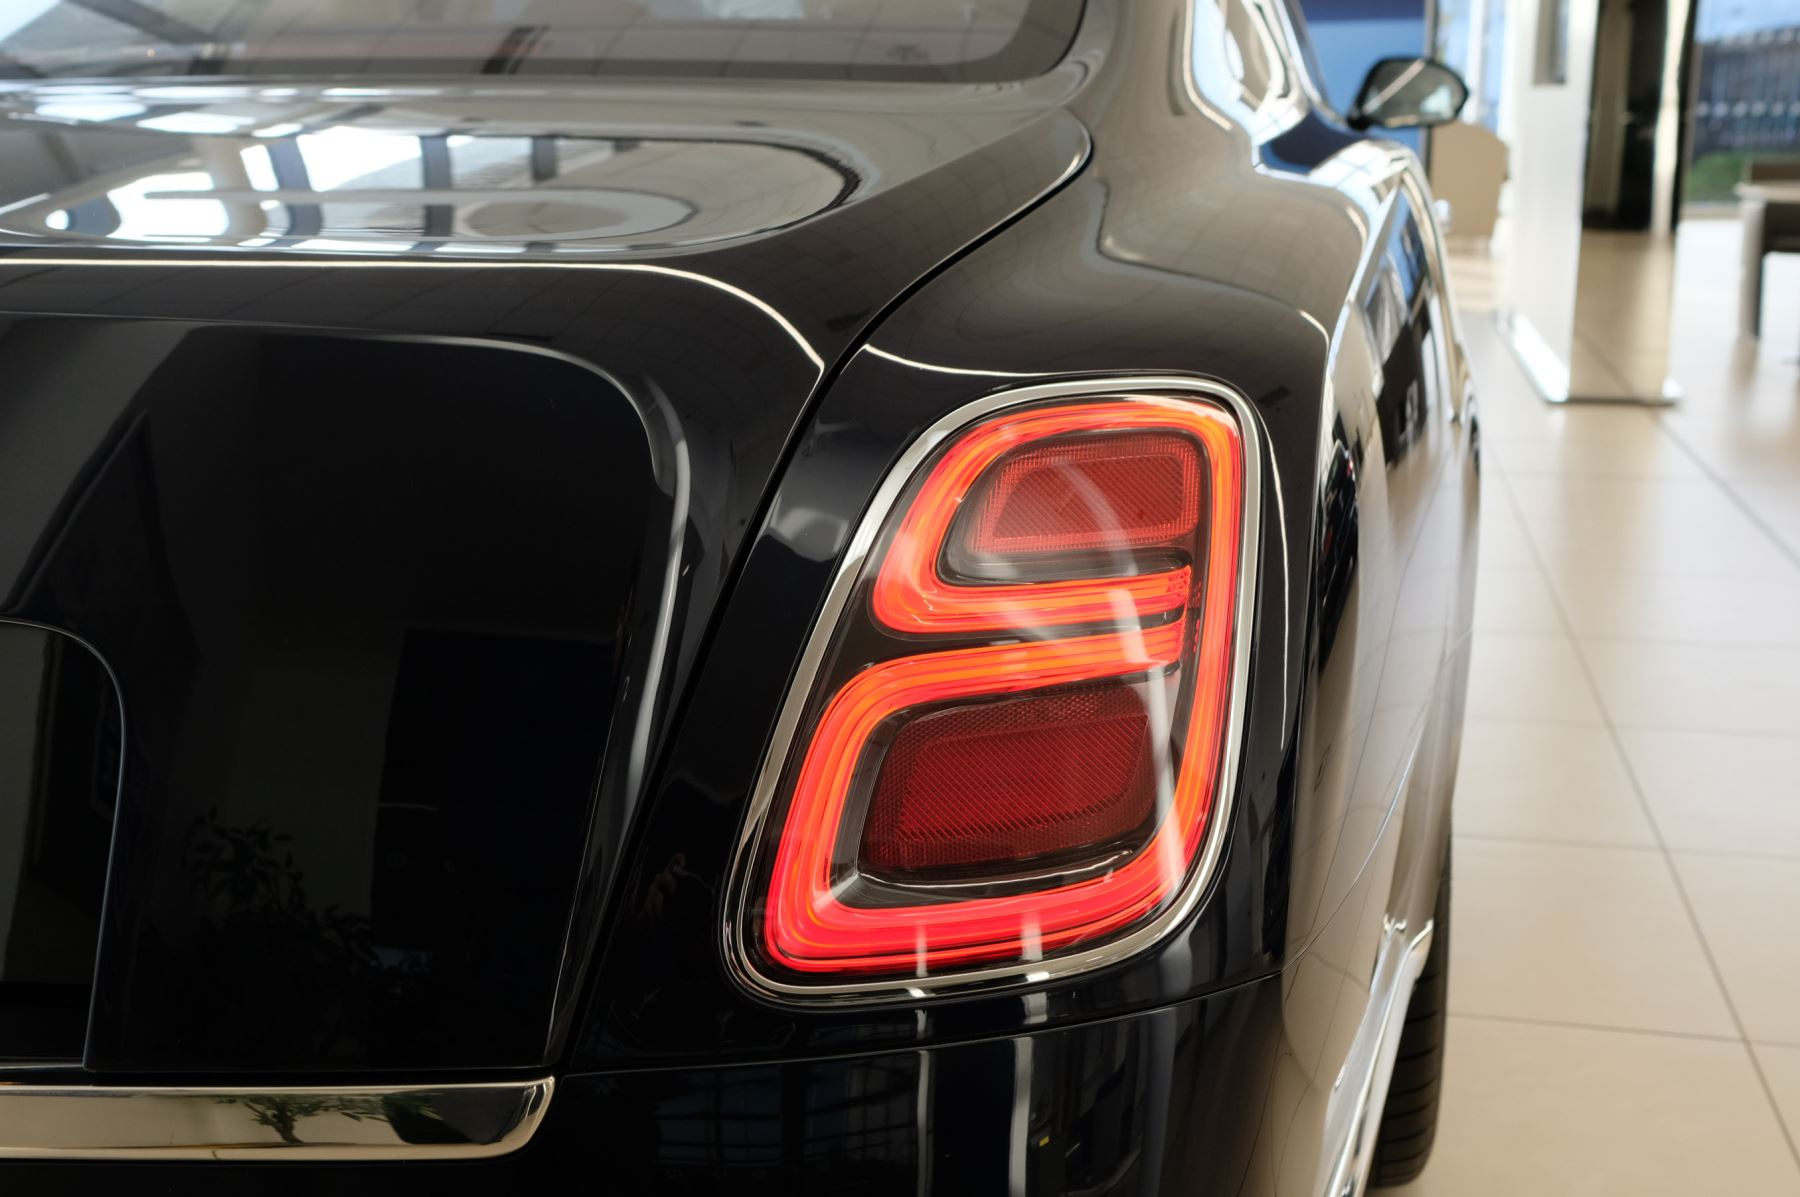 Bentley Mulsanne Speed 6.8 V8 Speed - Speed Premier, Entertainment and Comfort Specification image 7